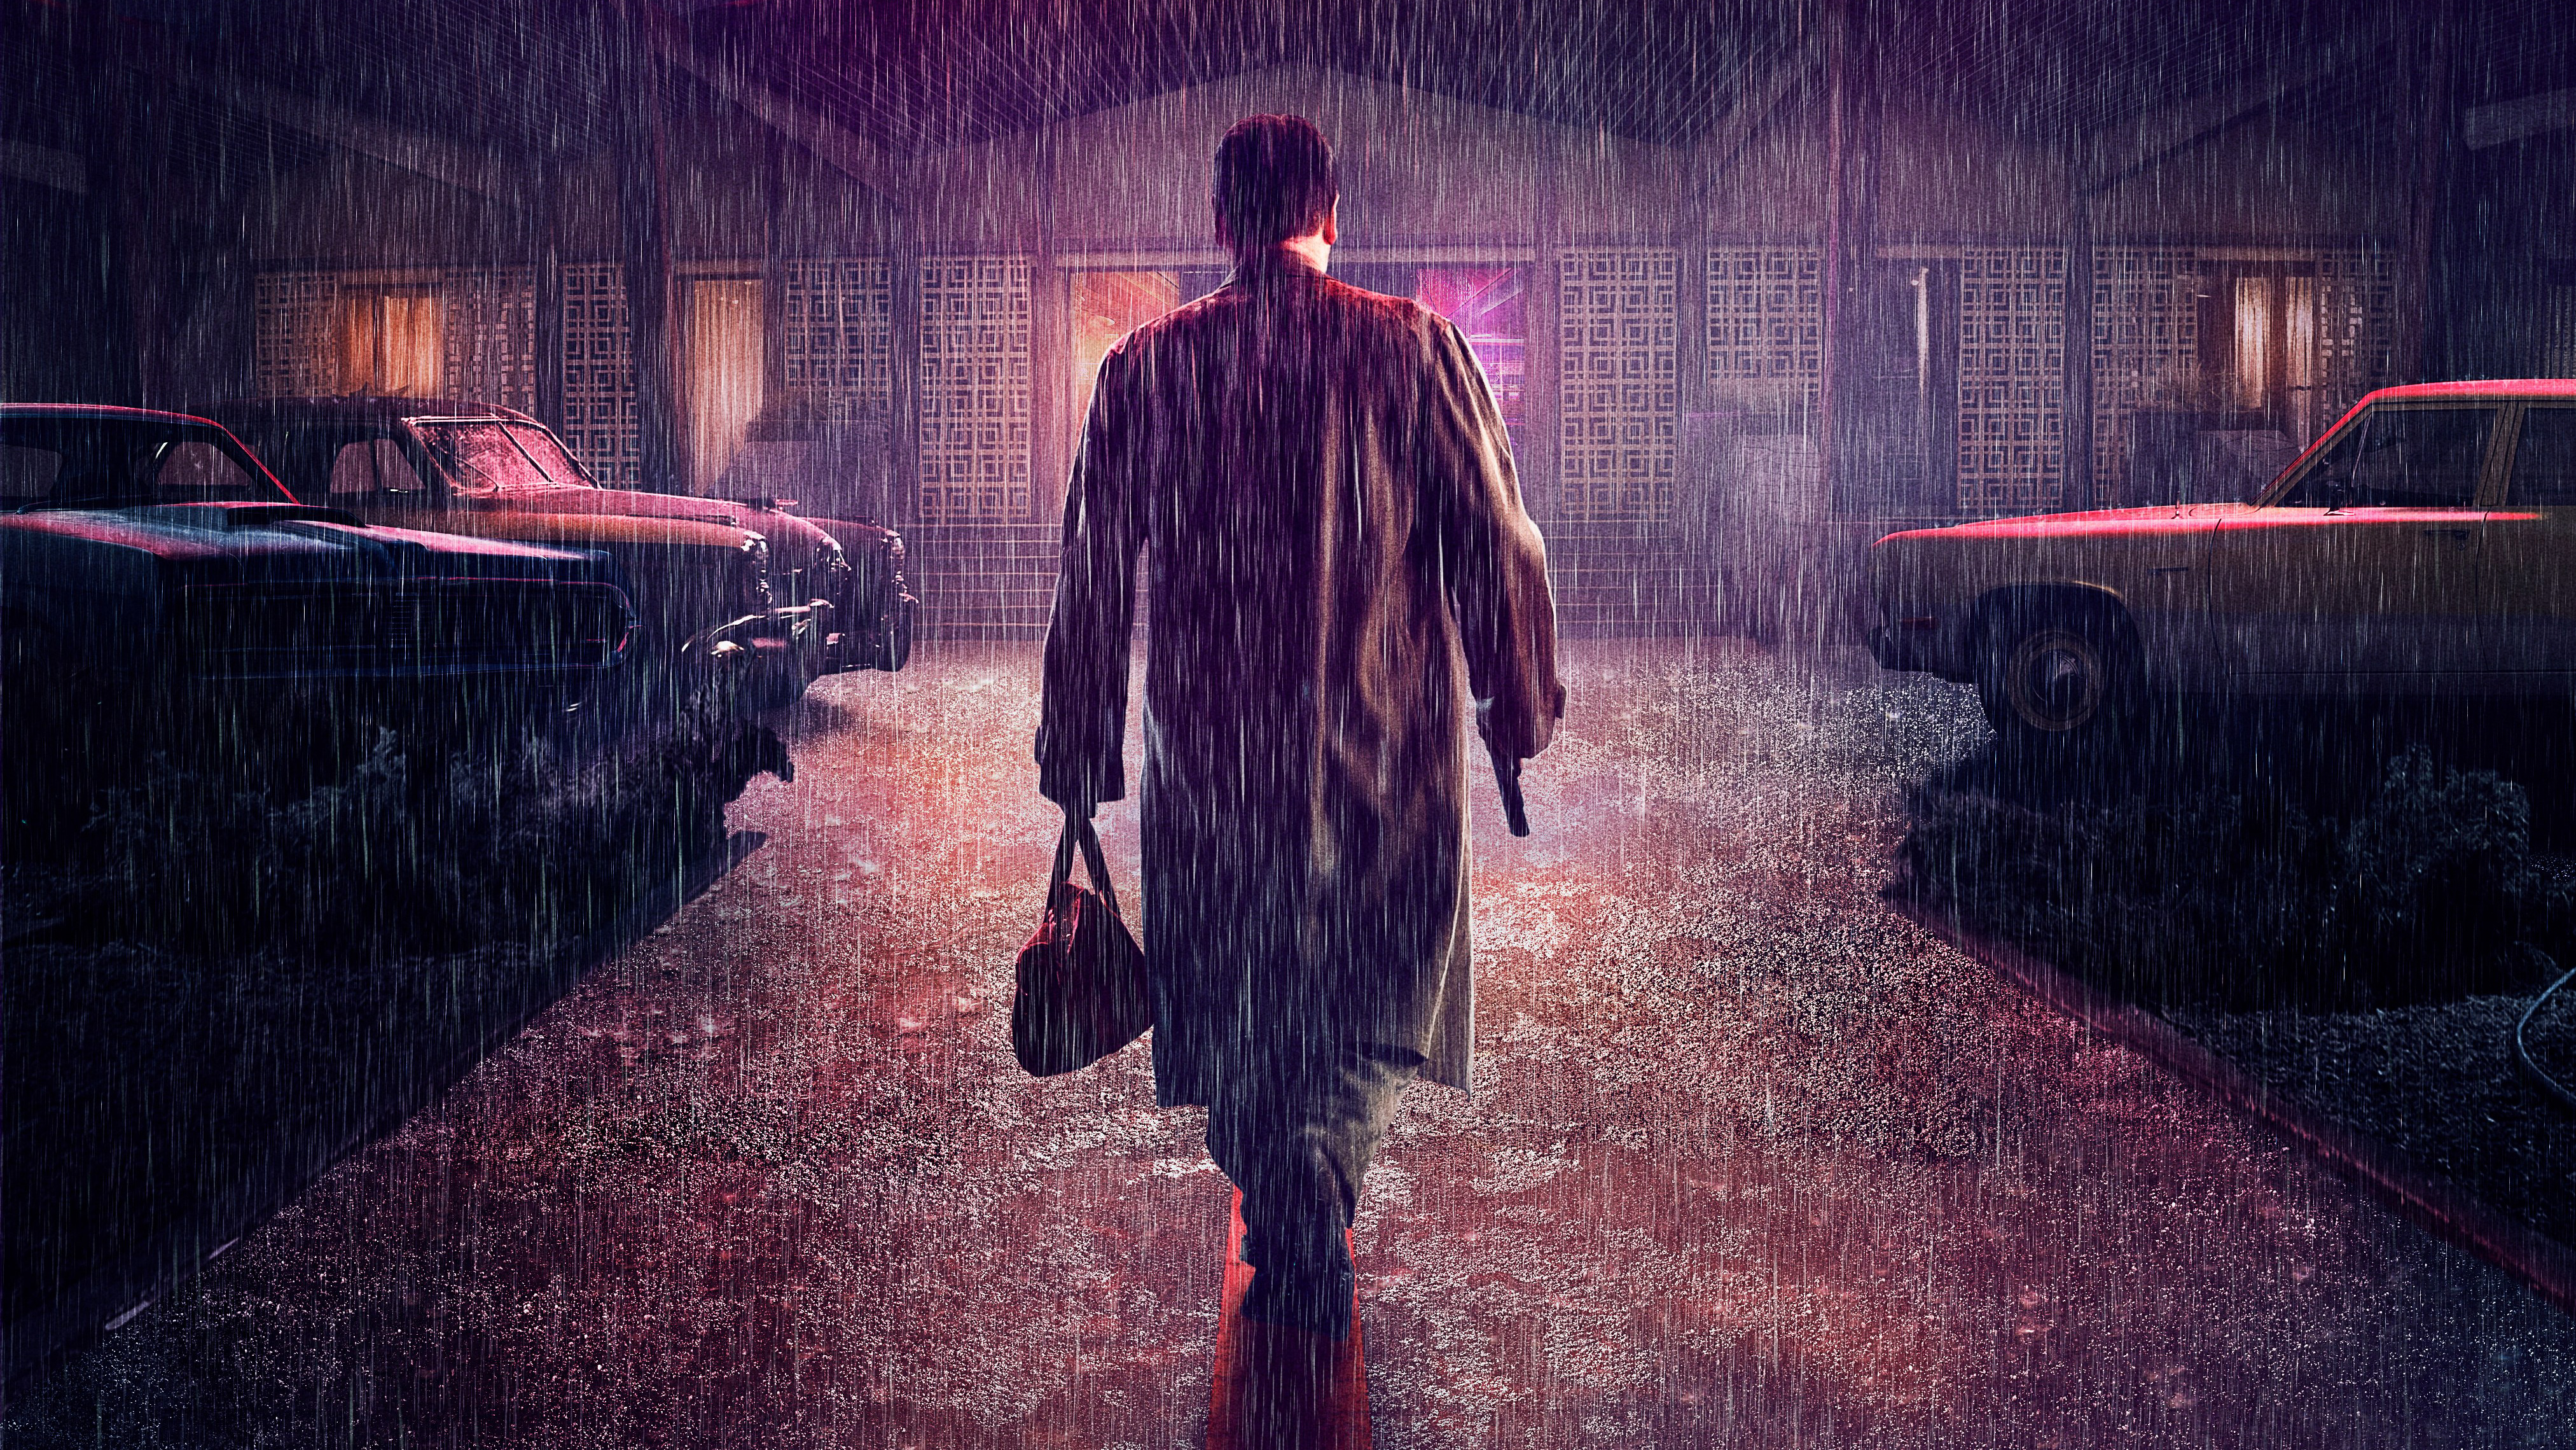 Nick Offerman In Bad Times At The El Royale Hd Movies 4k